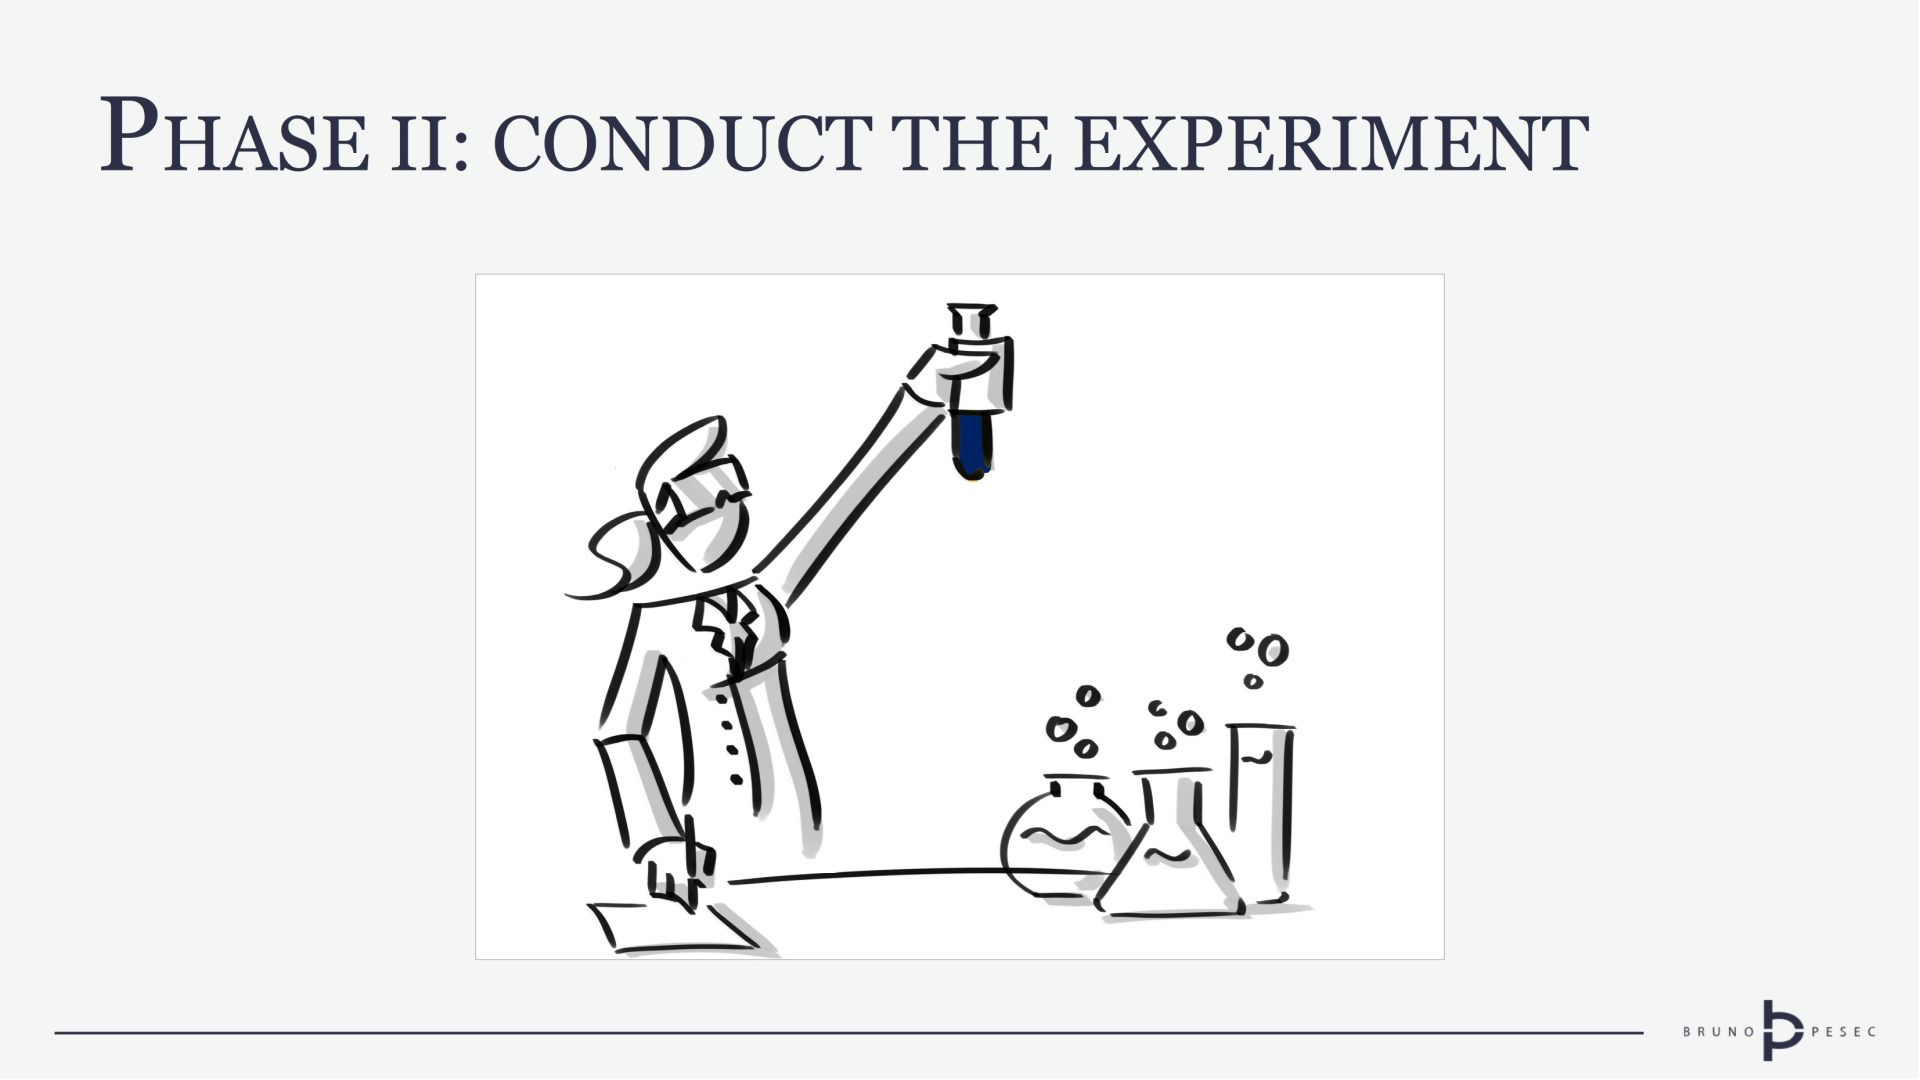 Phase II: Conduct the experiment